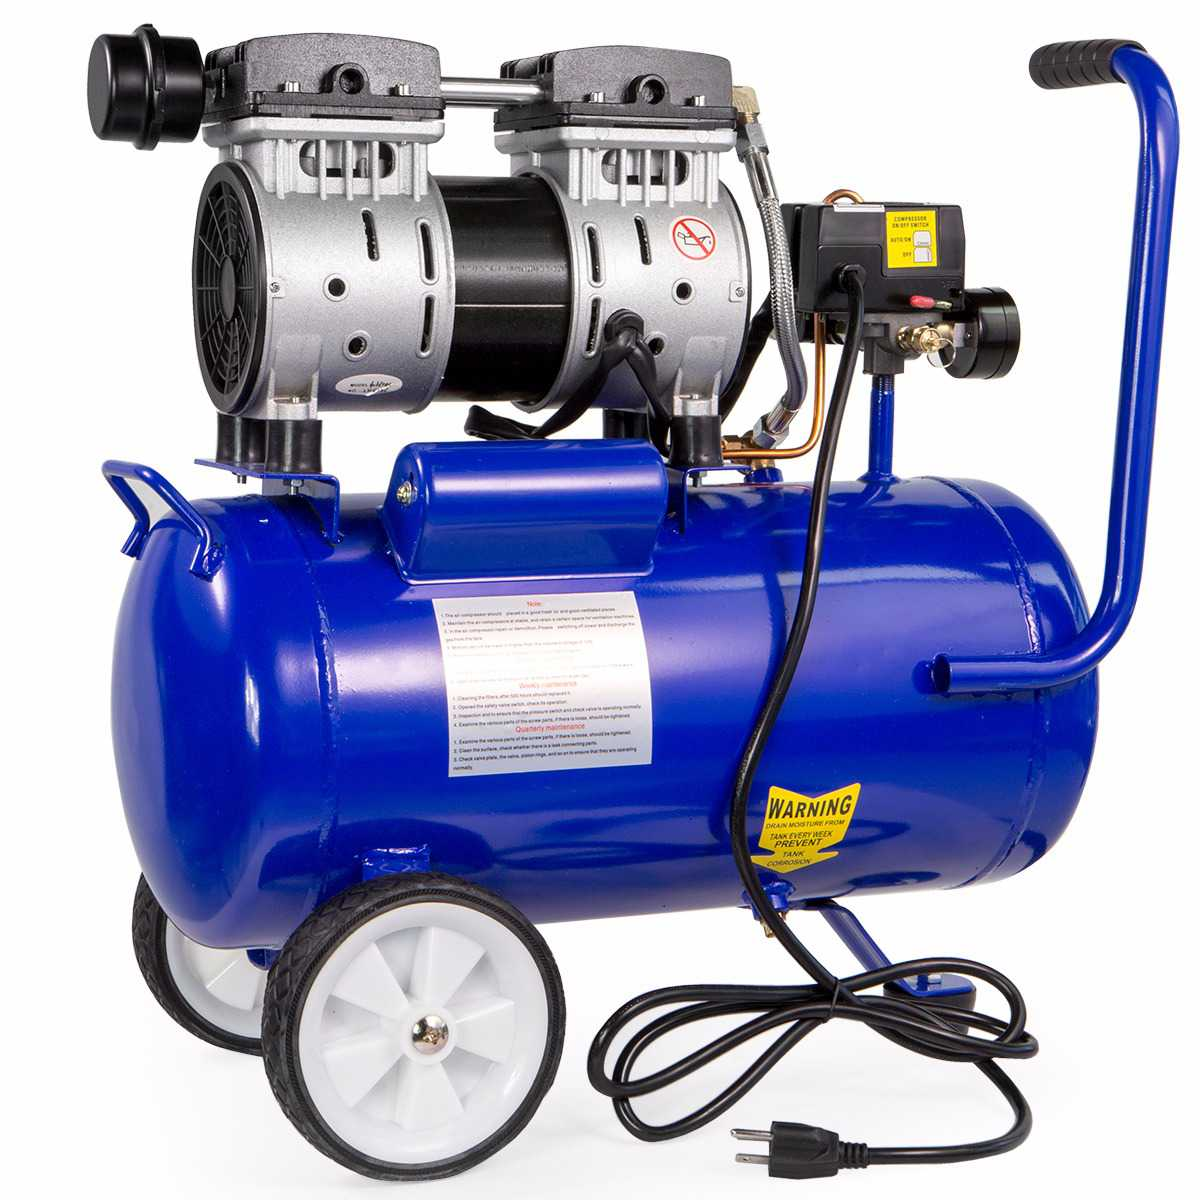 6.3GAL 1HP Elite Quiet Oil Free Motor Steel Air Compressor Tank with Wheels Tool